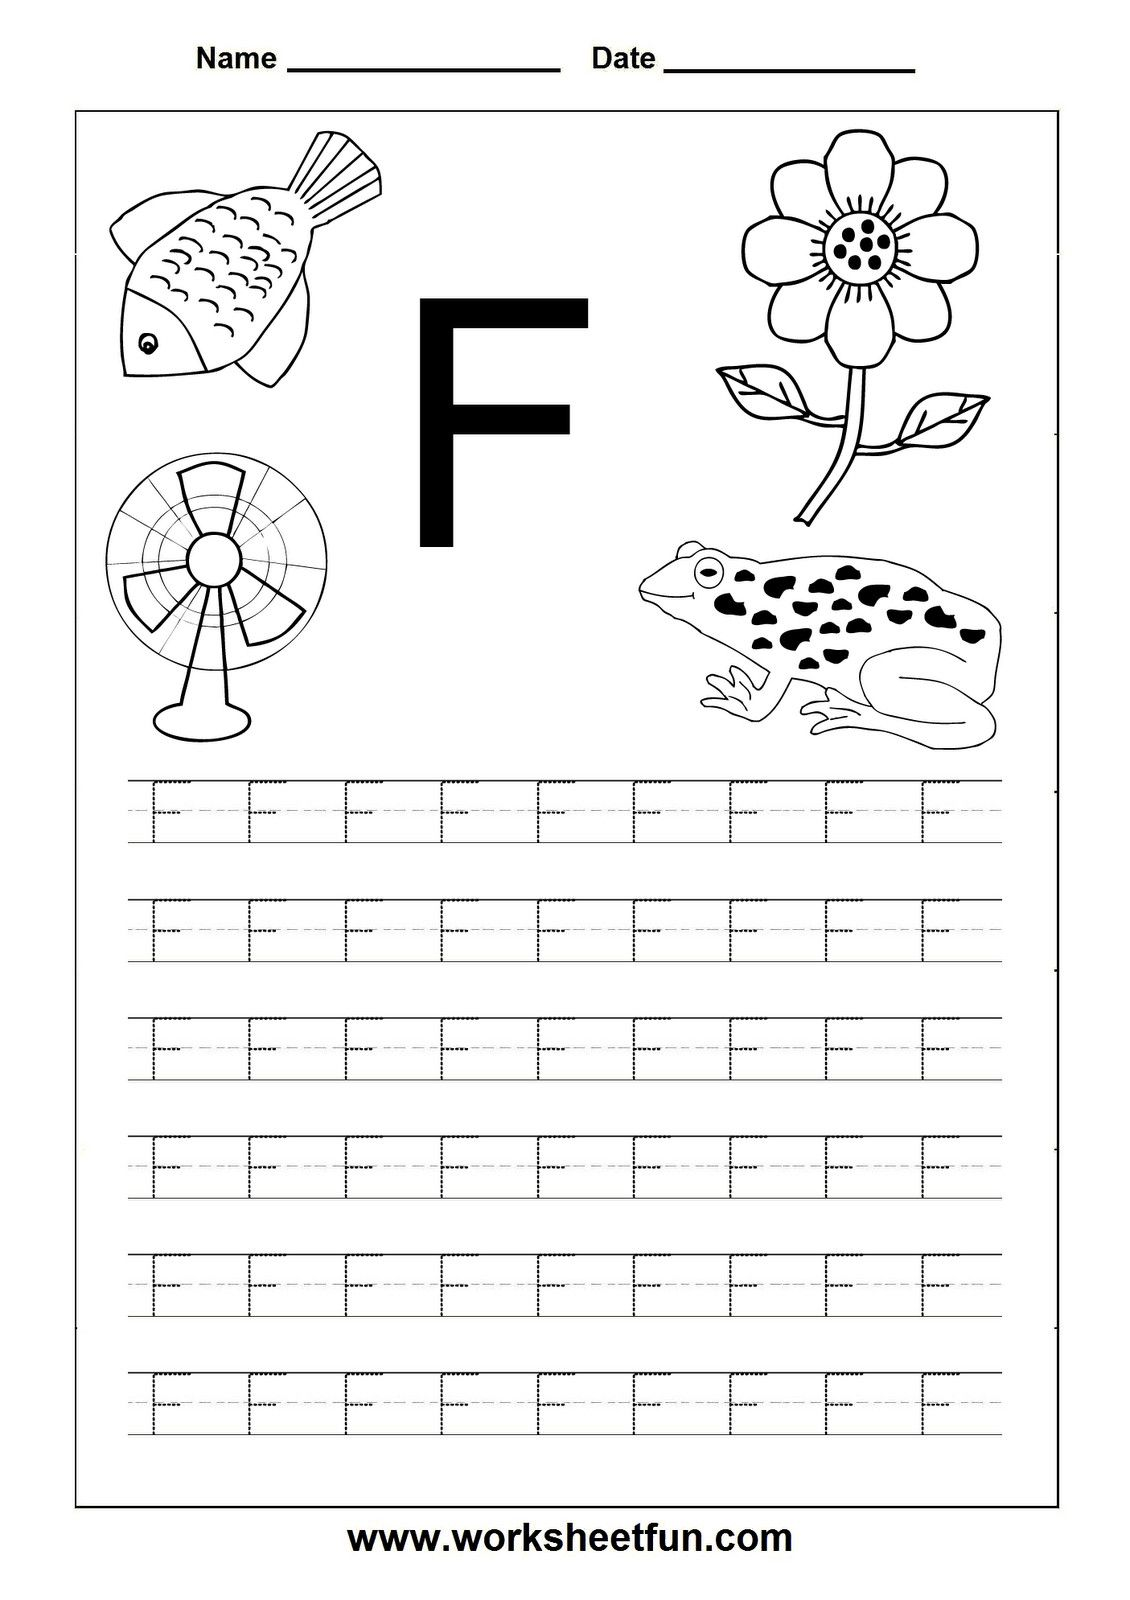 5 Worksheet Name Writing Practice Preschool Handwriting